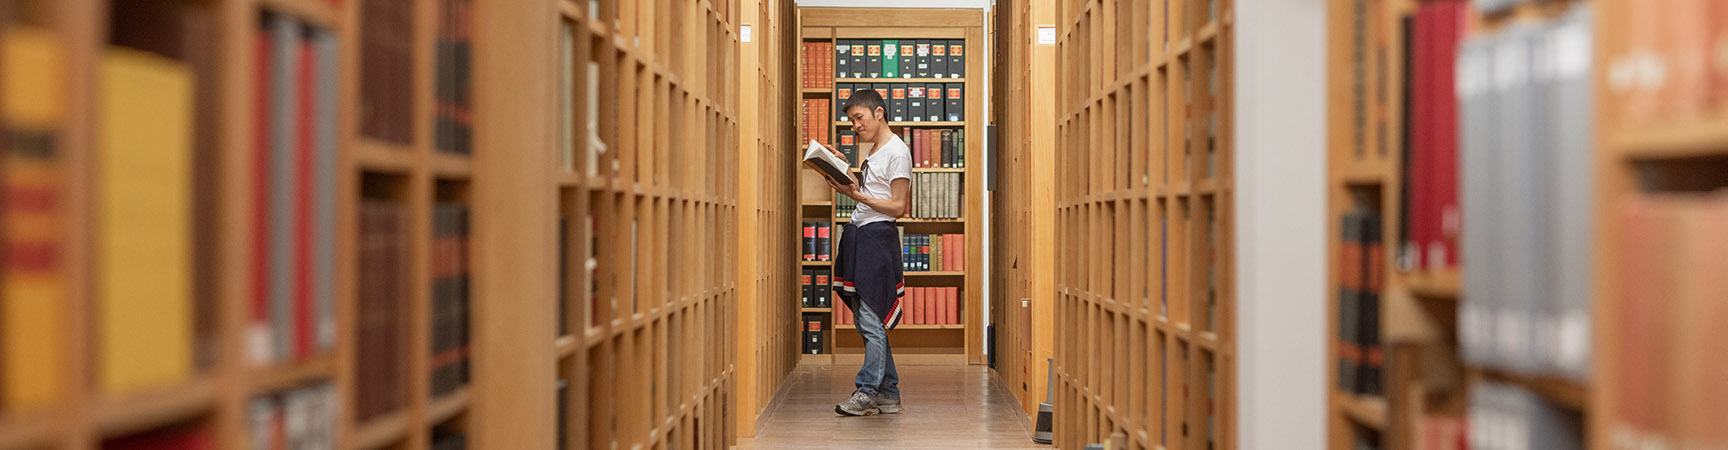 A long row of wooden bookshelves either side of a walkway, a student stands at the end reading